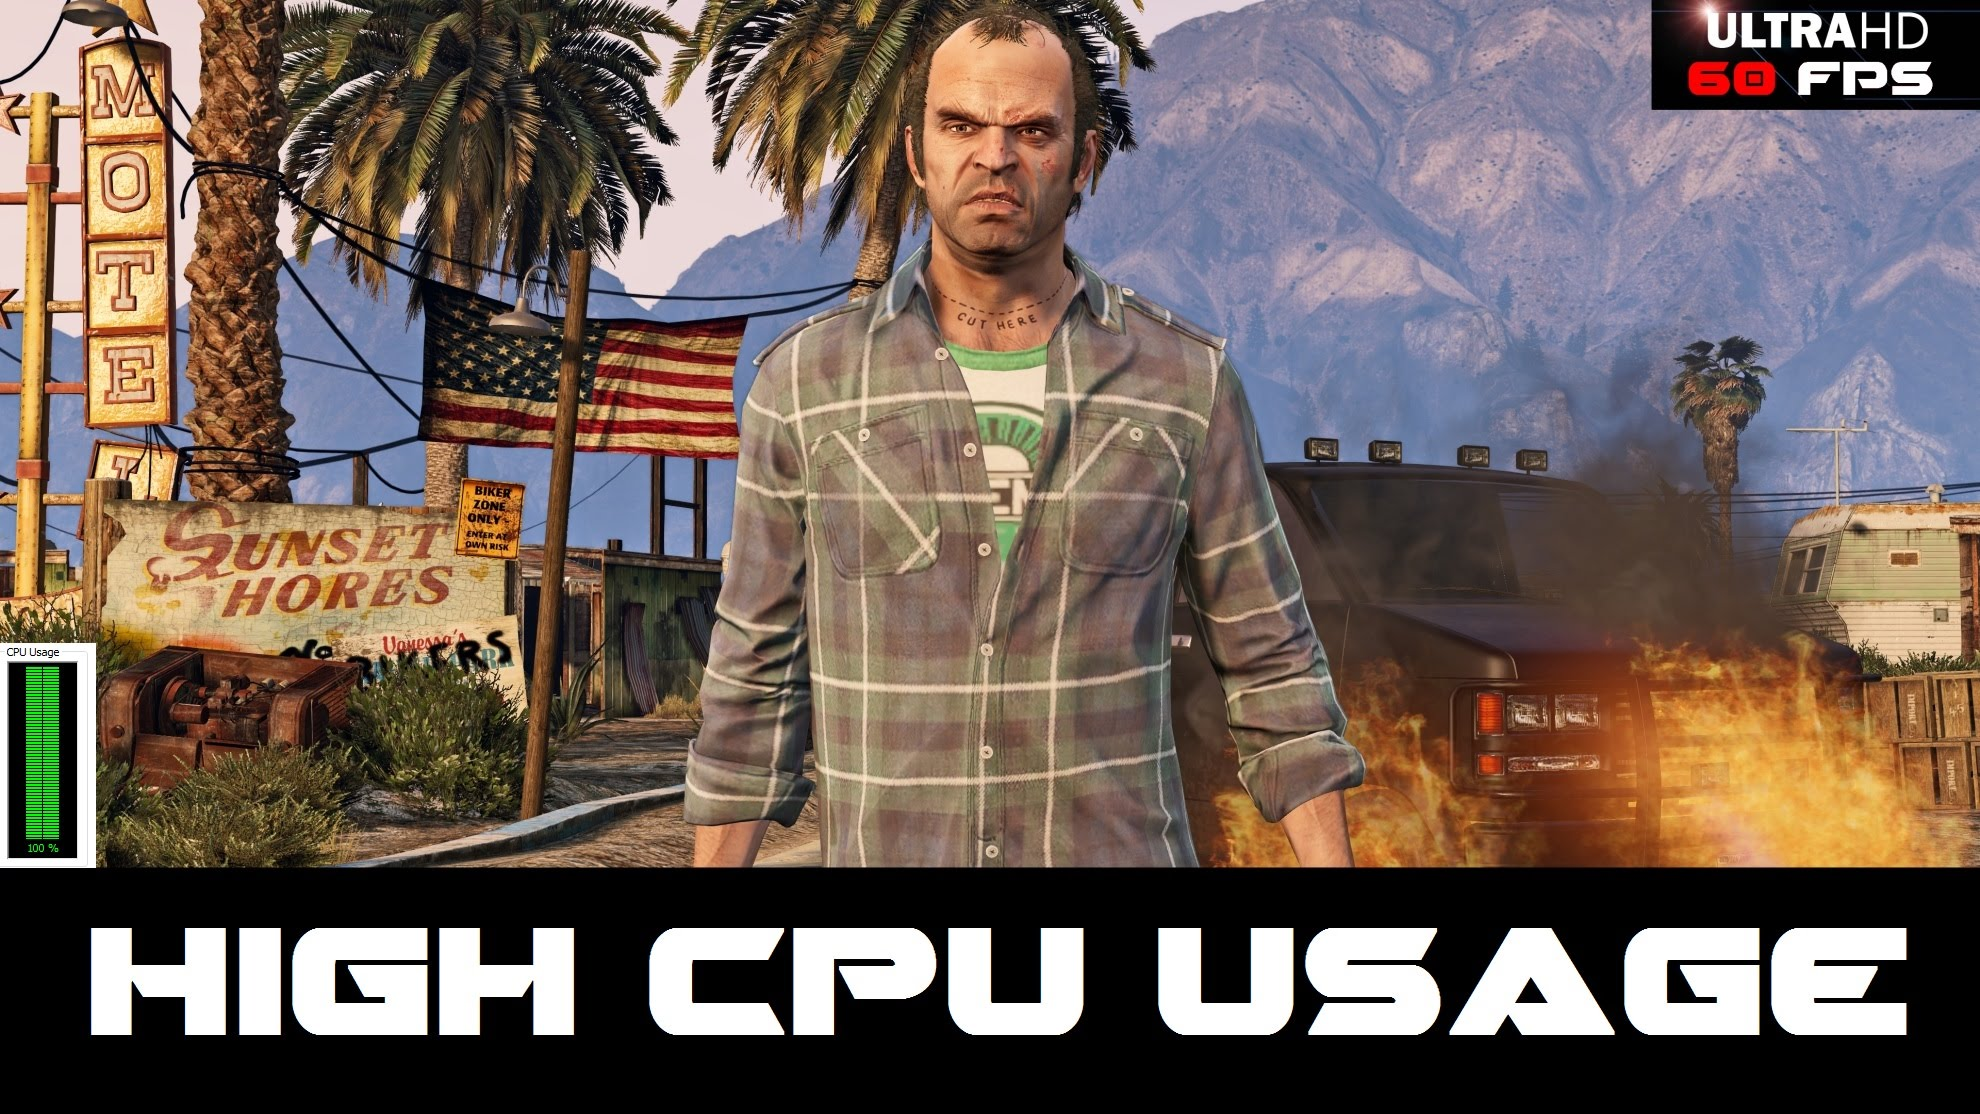 Photo of Ultimul Patch GTA 5 reduce consumul pe procesor